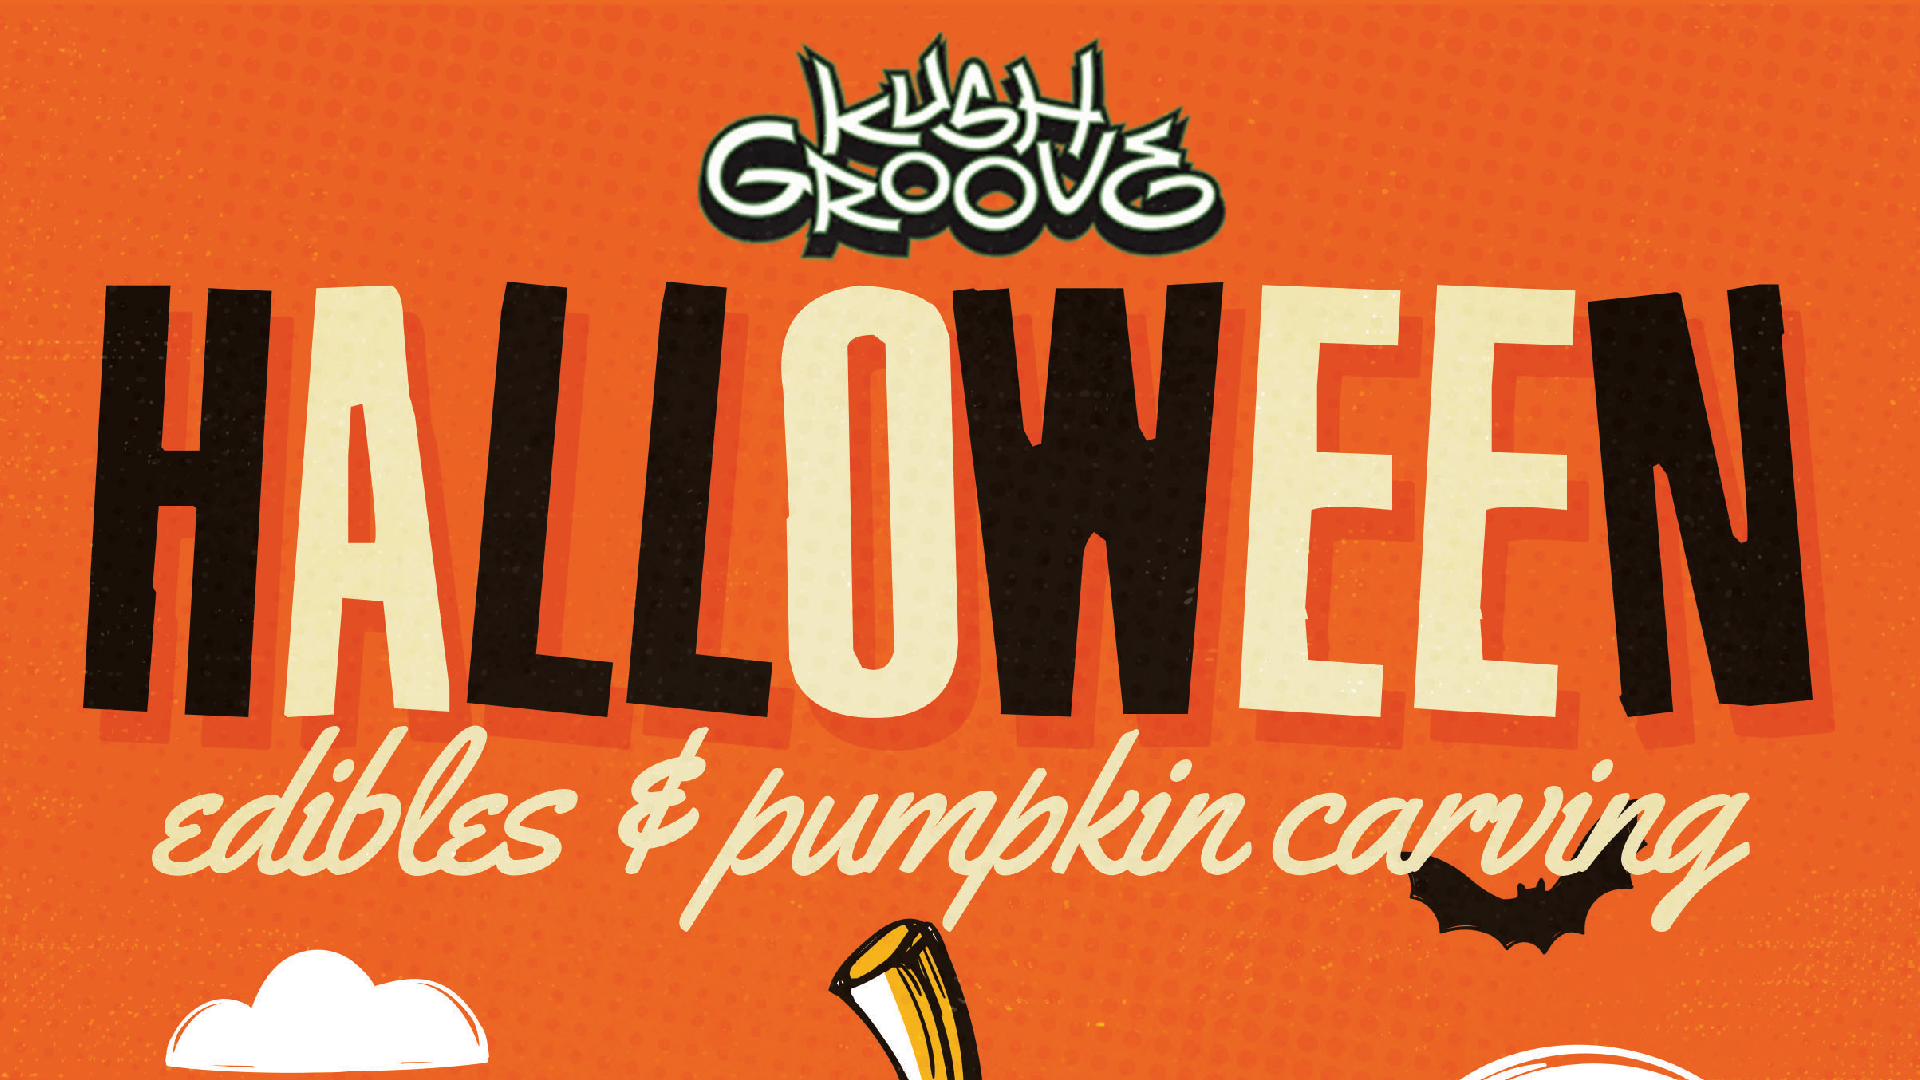 Kush Groove Halloween Edibles & Pumpkin Carving Party